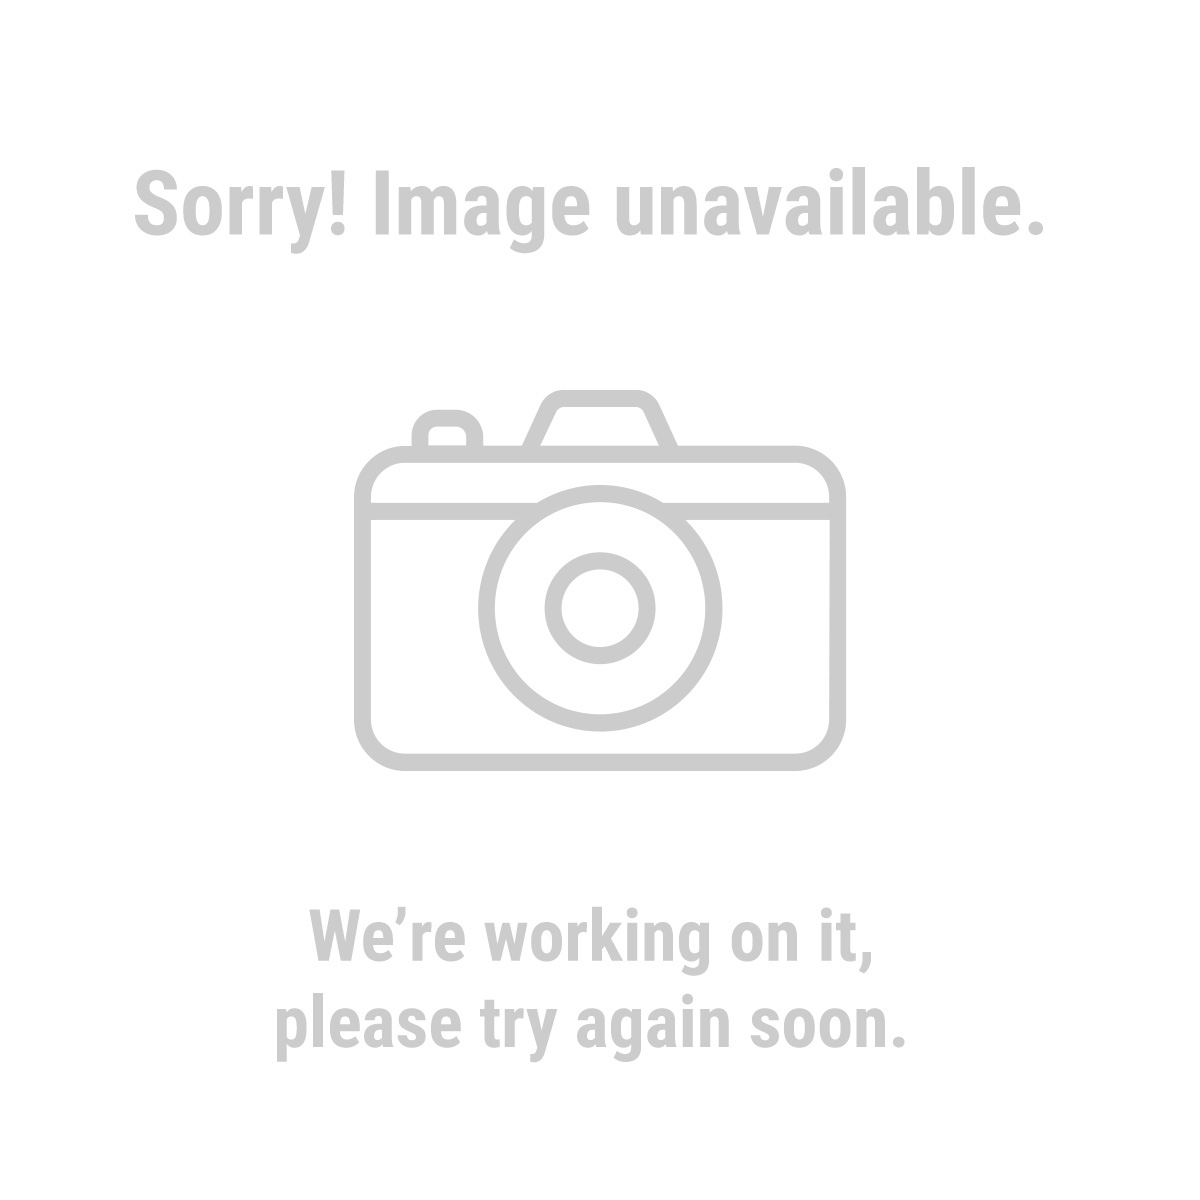 Storehouse 67628 1001 Piece Nut and Bolt Storehouse®